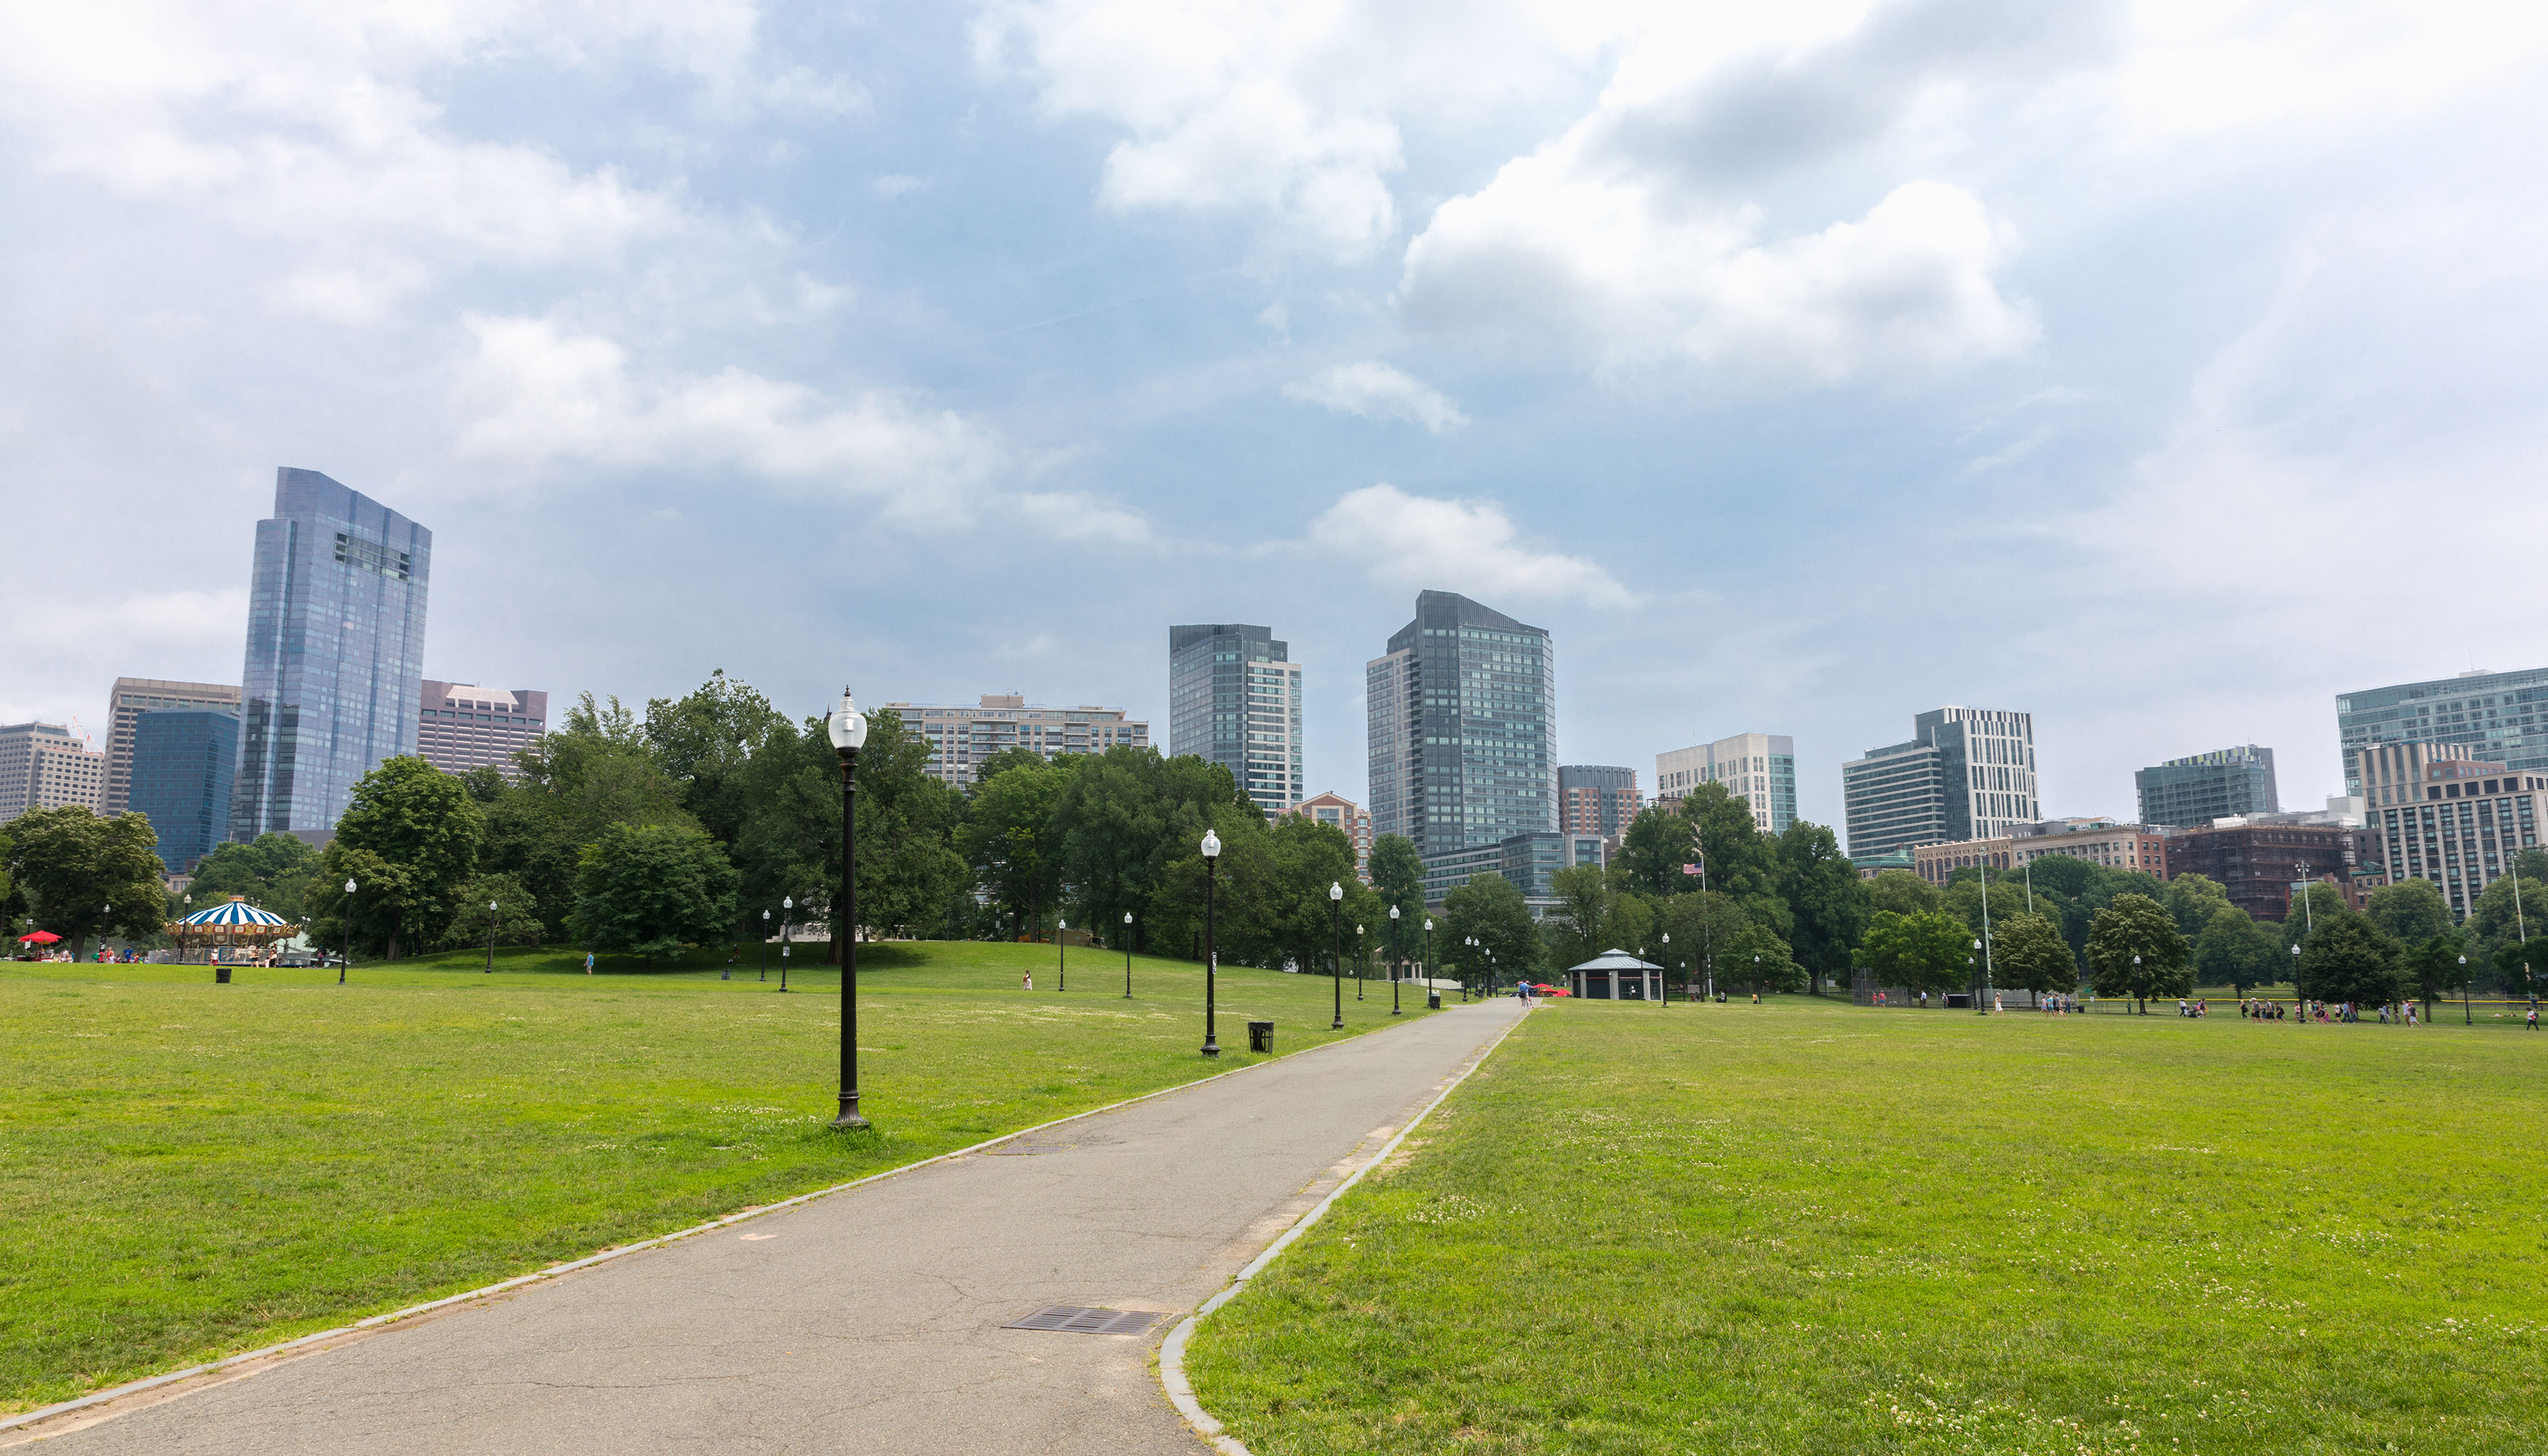 A park. There is a path that has a large expanse of green lawn on each side. In the distance is a city skyline. There is a blue sky.